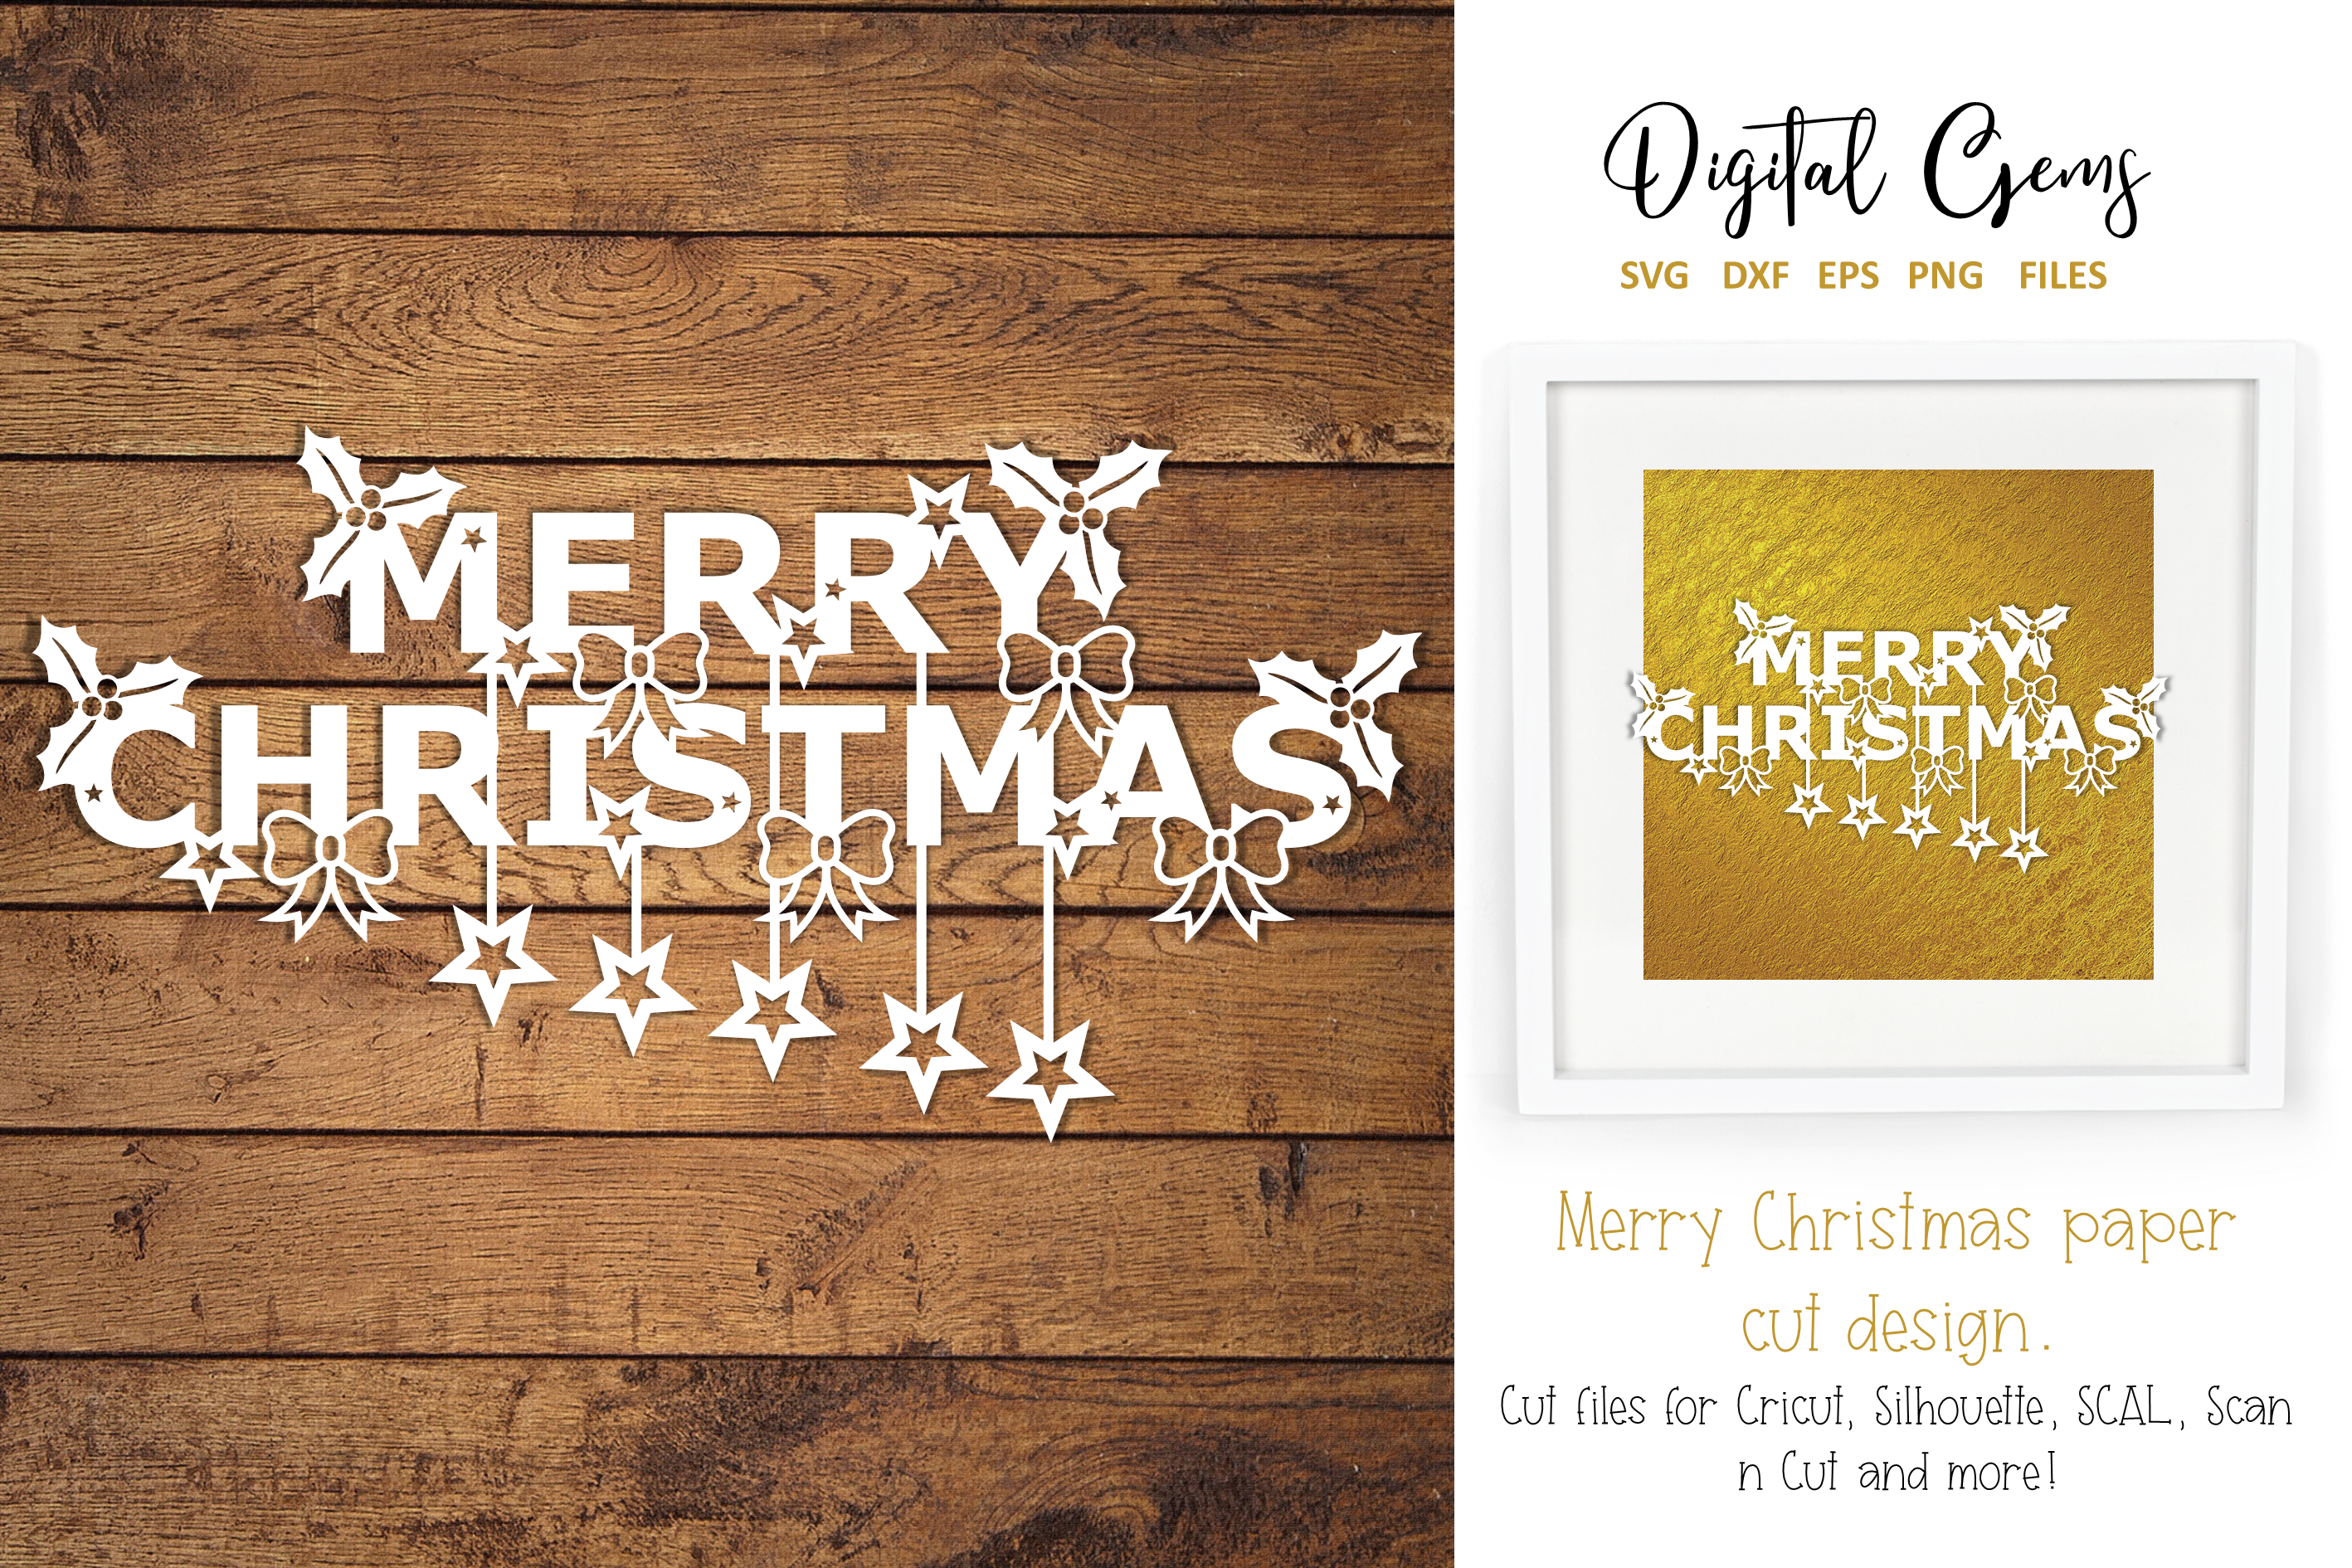 Download Free Merry Christmas Papercut Design Graphic By Digital Gems for Cricut Explore, Silhouette and other cutting machines.